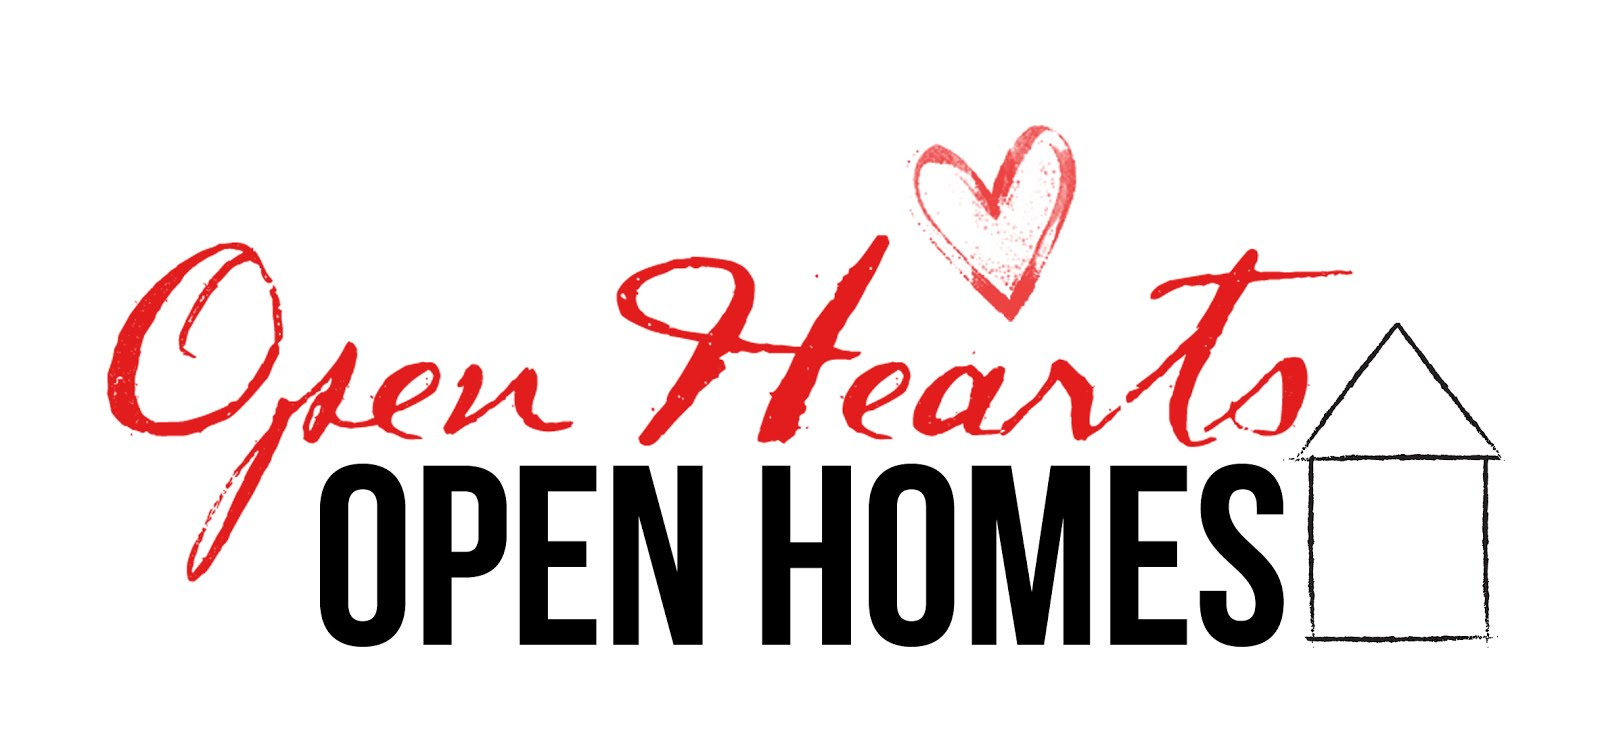 Open Hearts Open Homes Ministry